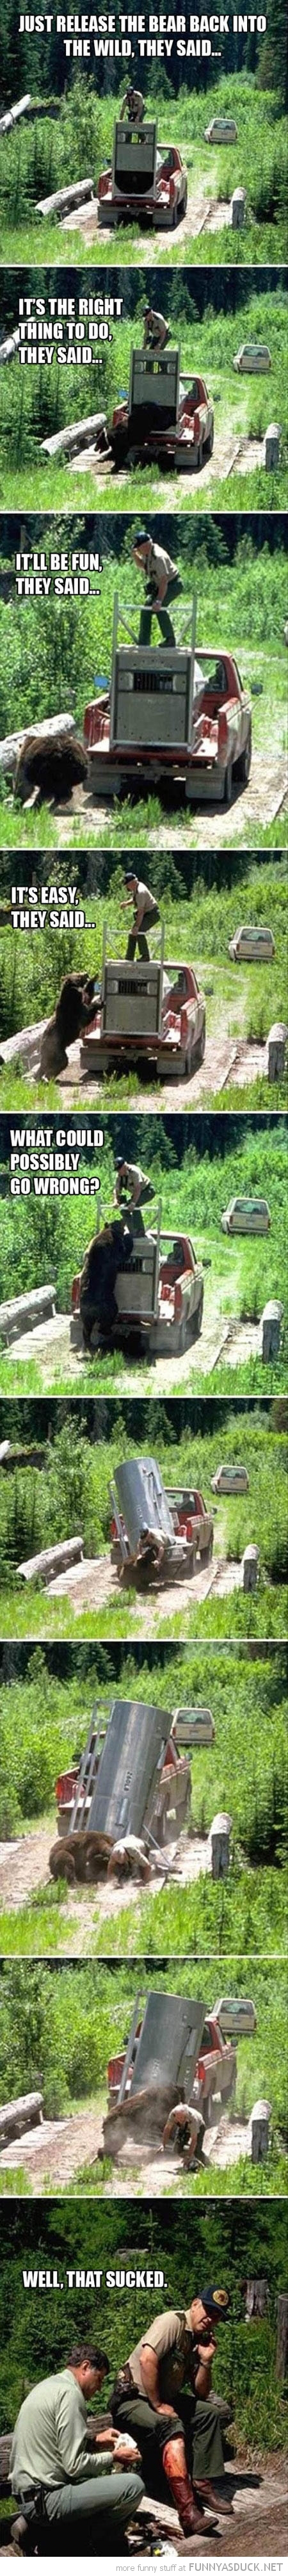 release bear wild animal attacking keeper man that sucked funny pics pictures pic picture image photo images photos lol